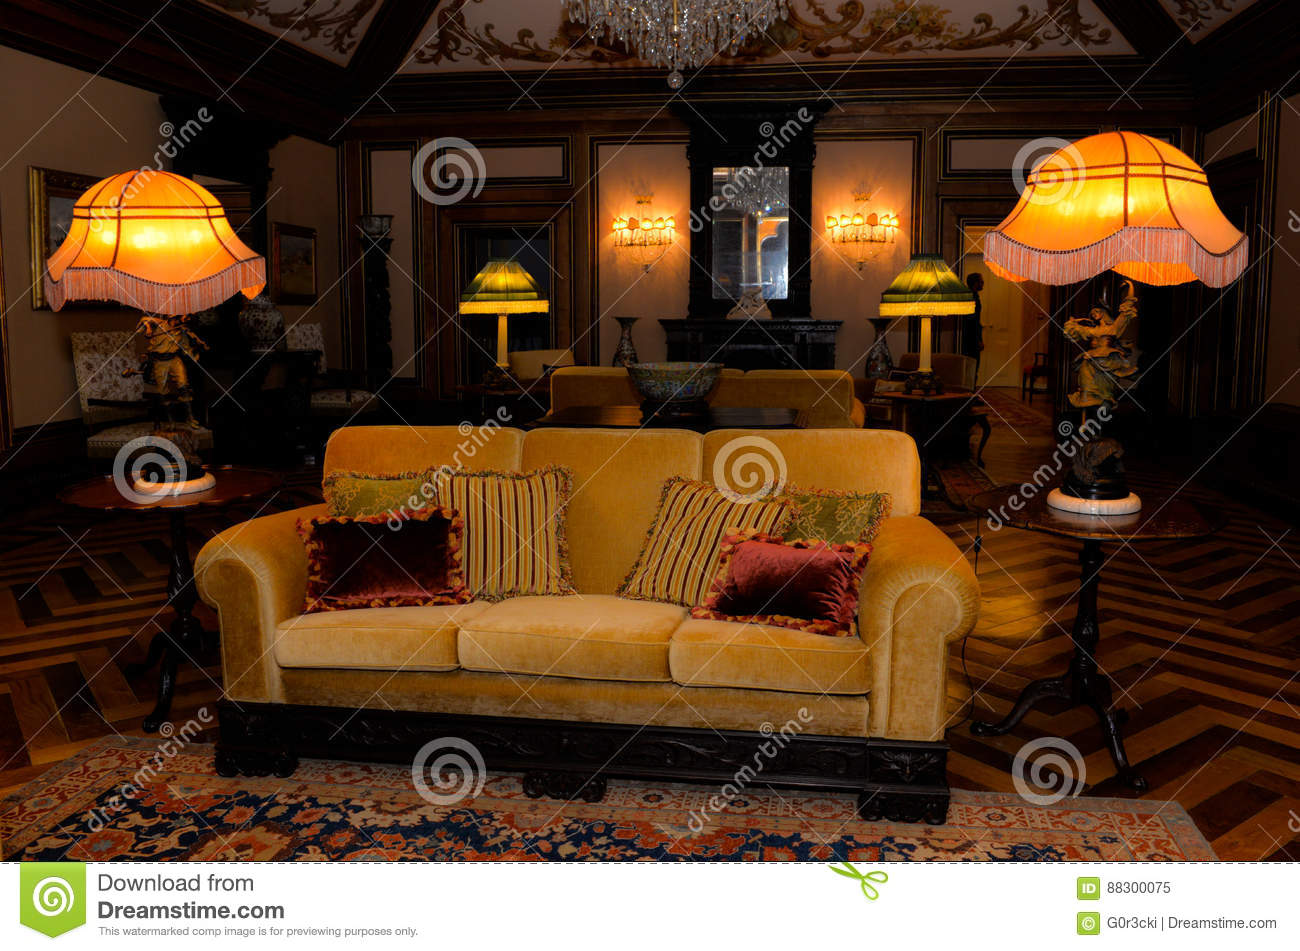 Vintage Palace Interior, Old Fashioned Living Room, Royalty Free Stock Photo